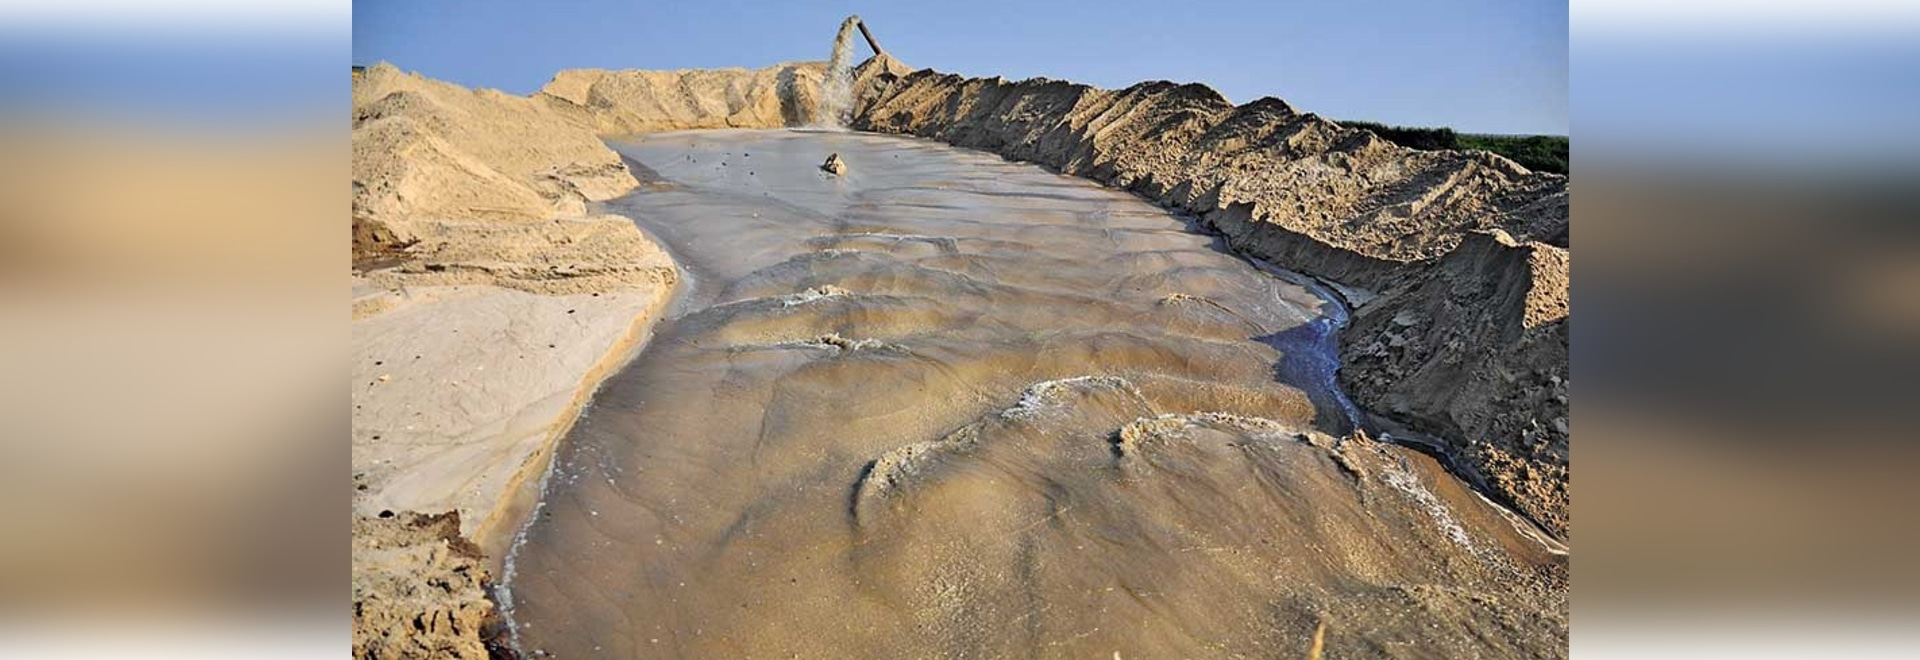 Sand Shortage May Slow Growth in Developing Regions